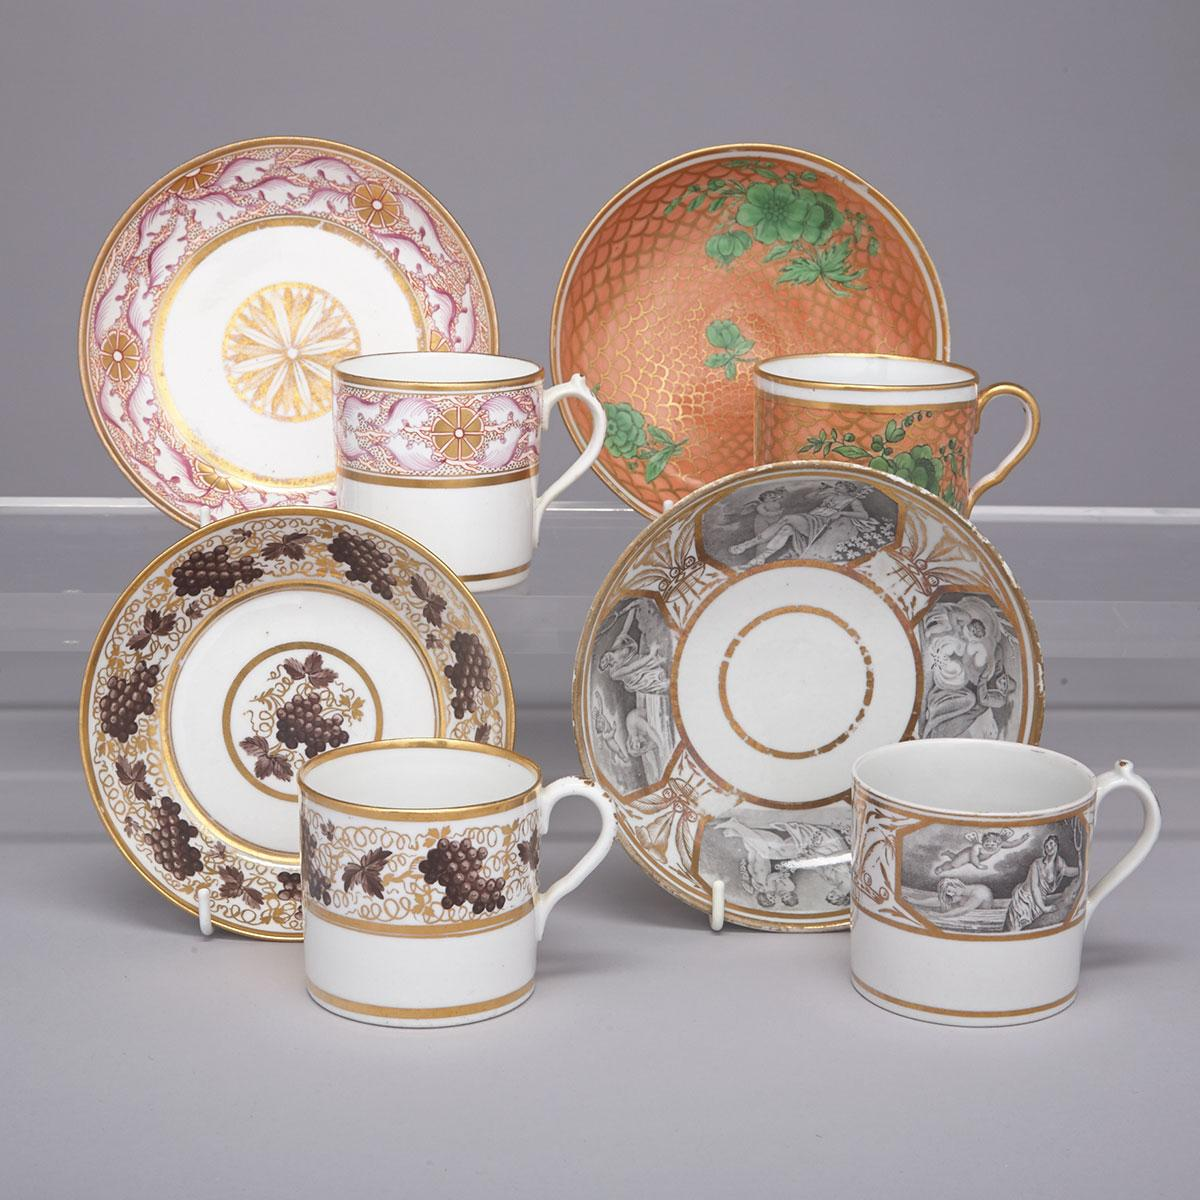 Four Various English Porcelain Coffee Cans and Saucers, c.1800-1810